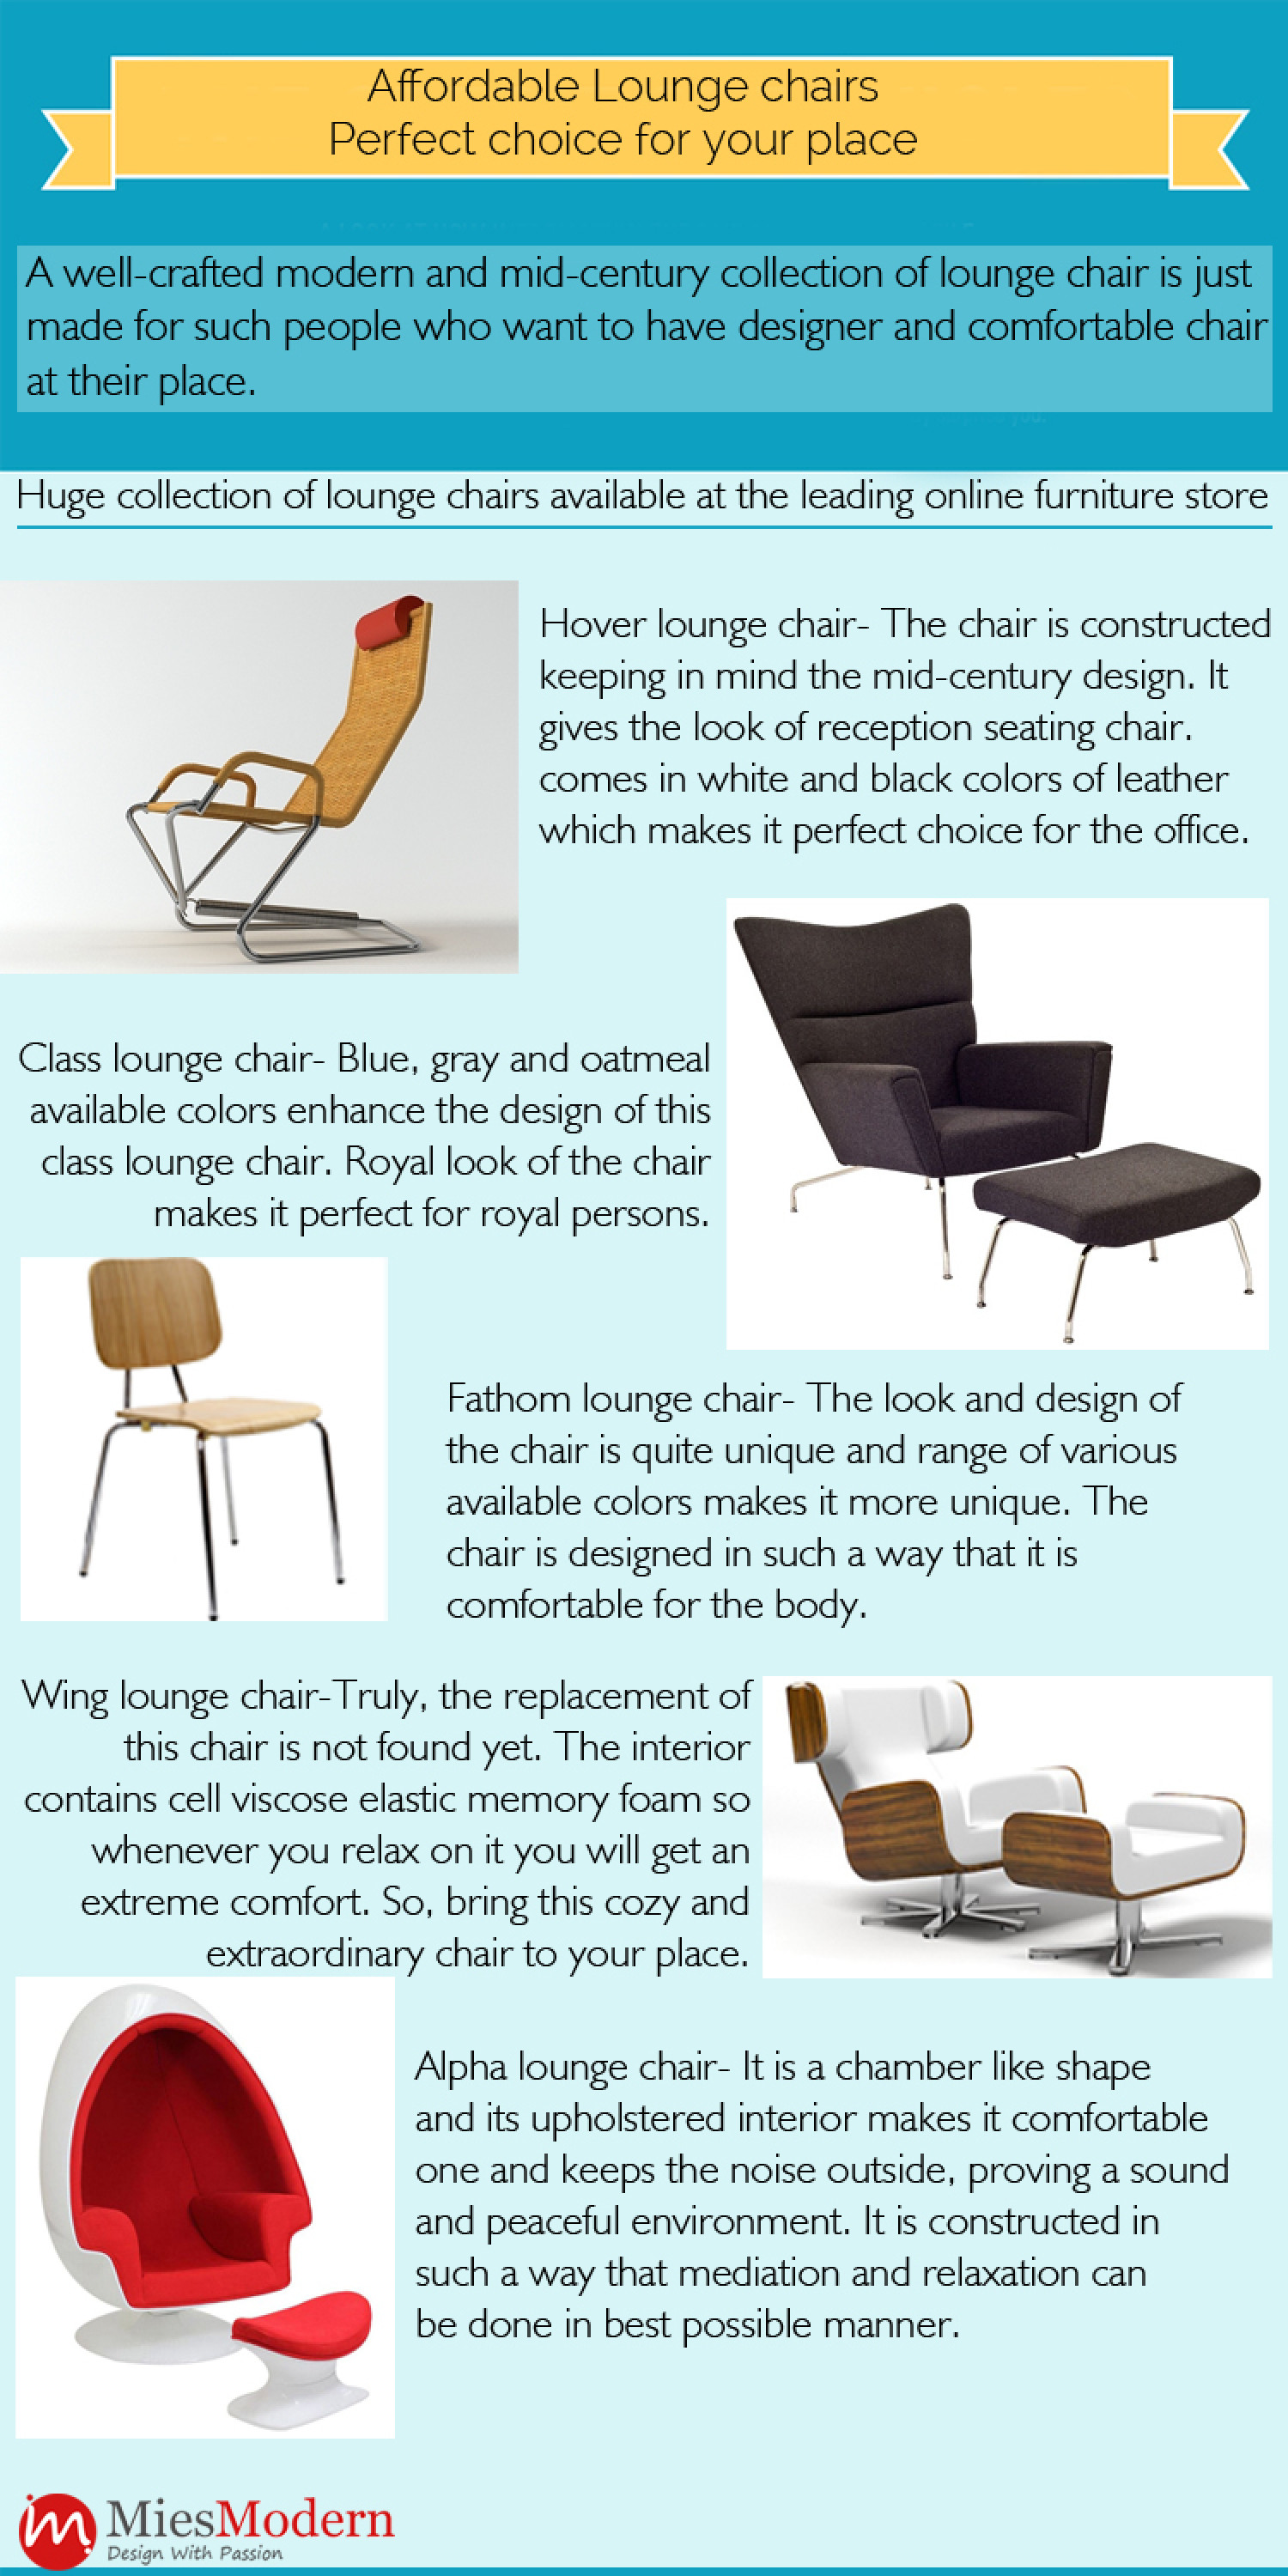 Enjoyable Affordable Lounge Chairs Perfect Choice For Your Place Dailytribune Chair Design For Home Dailytribuneorg